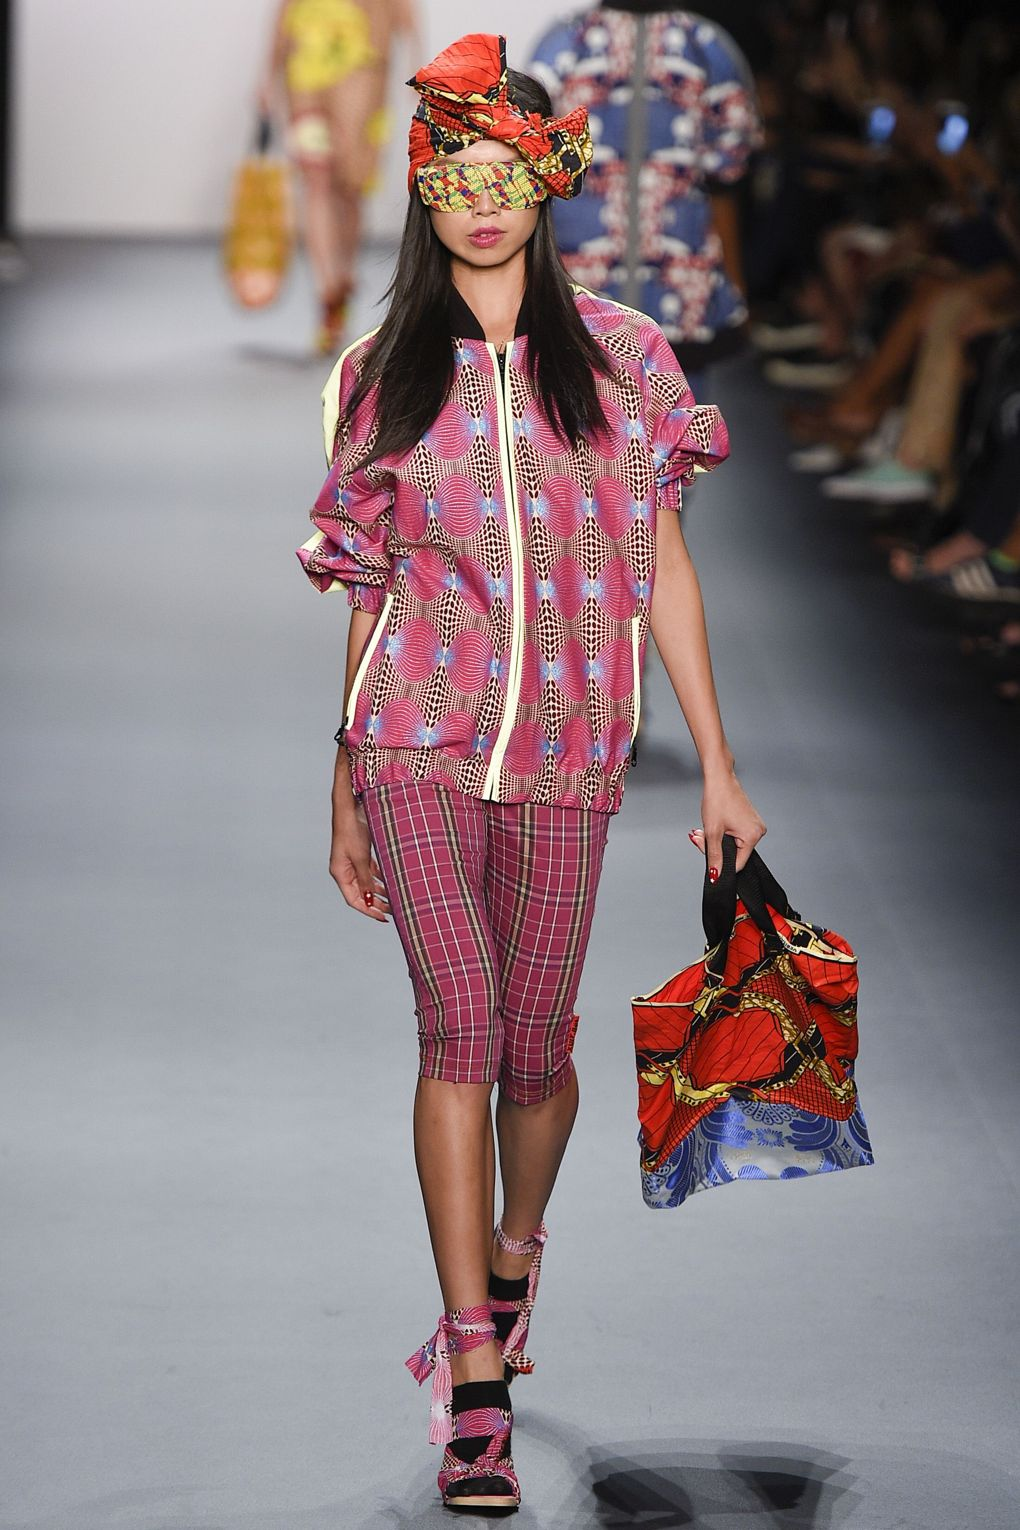 fashion-week-xuly-be%cc%88t-xuly-be%cc%88t-sprigsummer-2016-ready-to-wear-collection-18